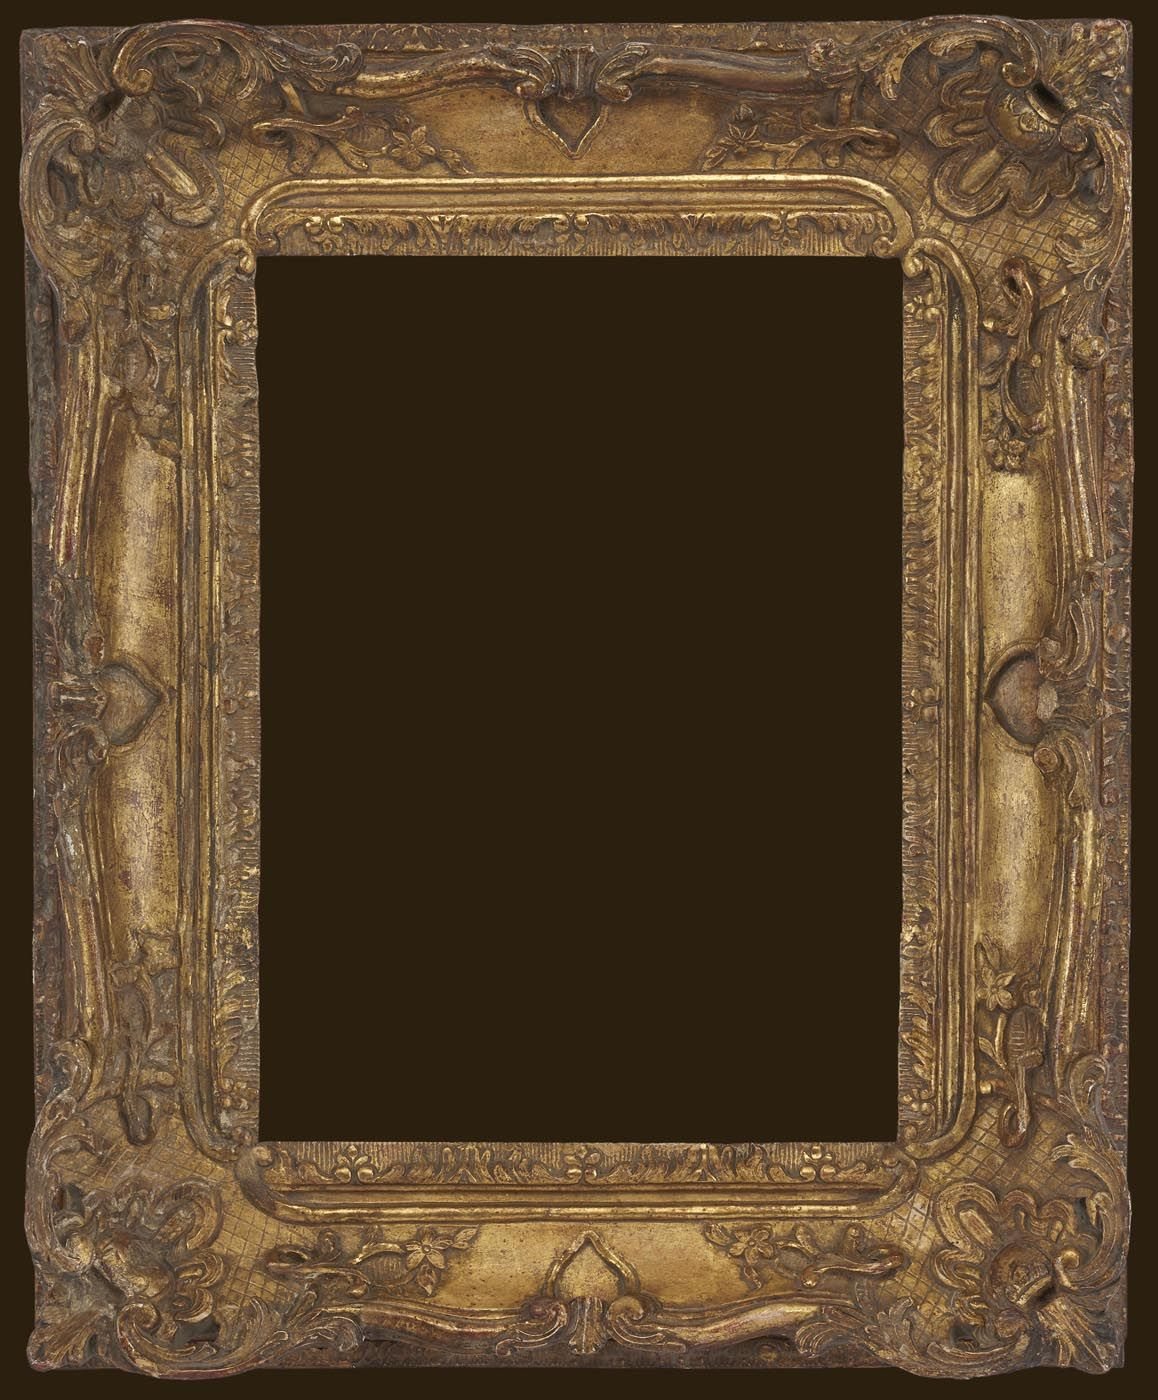 Louis Xv 19th Century 8 5 8 X 12 X 3 Diegosalazar Com Antique Frames Frame Antiques